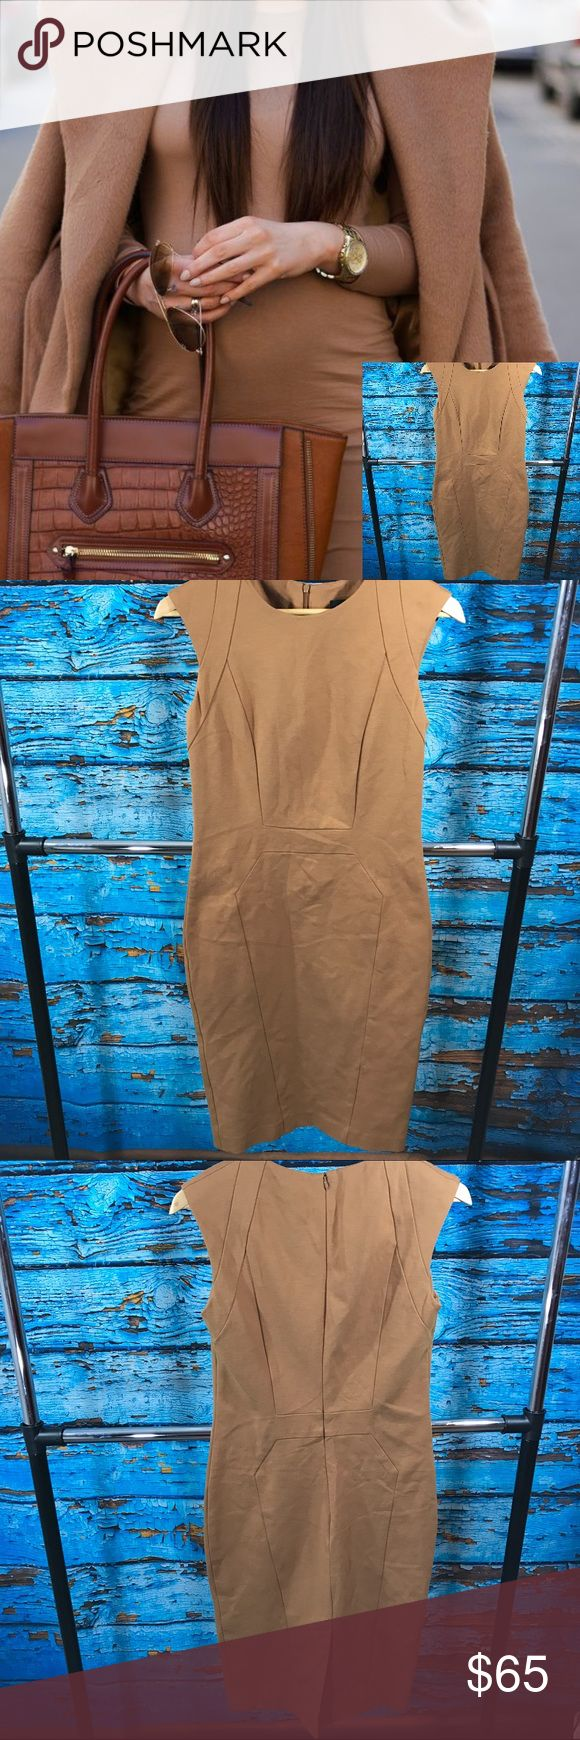 Cue Australia Camel 🐫 Body Con Dress Beautifully structured. Excellent used condition. Heavy material. True to size. Moderately stretchy. Cue  Dresses Midi